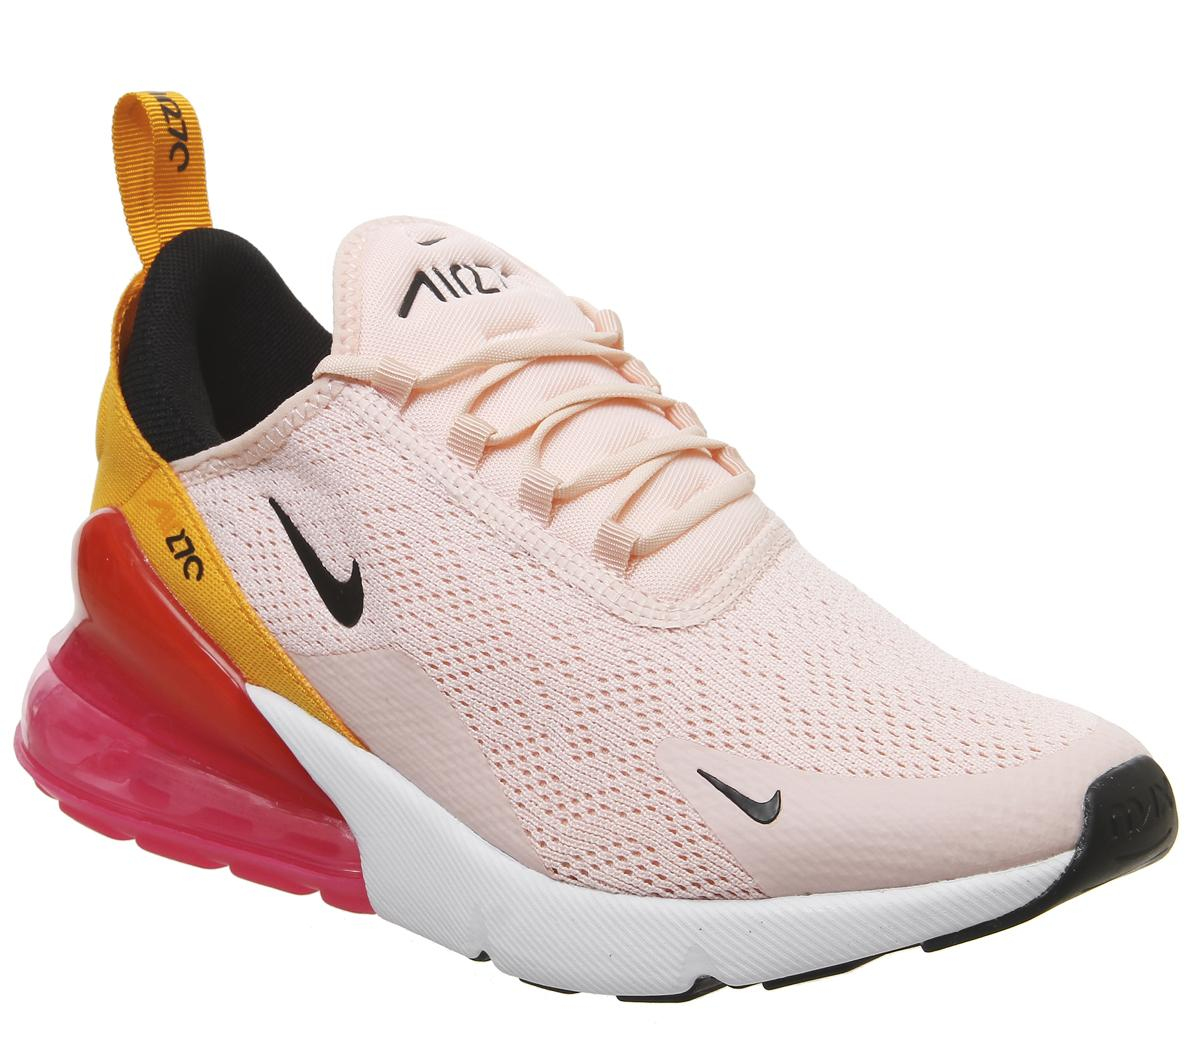 Nike Air Max 270 Trainers Washed Coral Black Laser Fuchsia